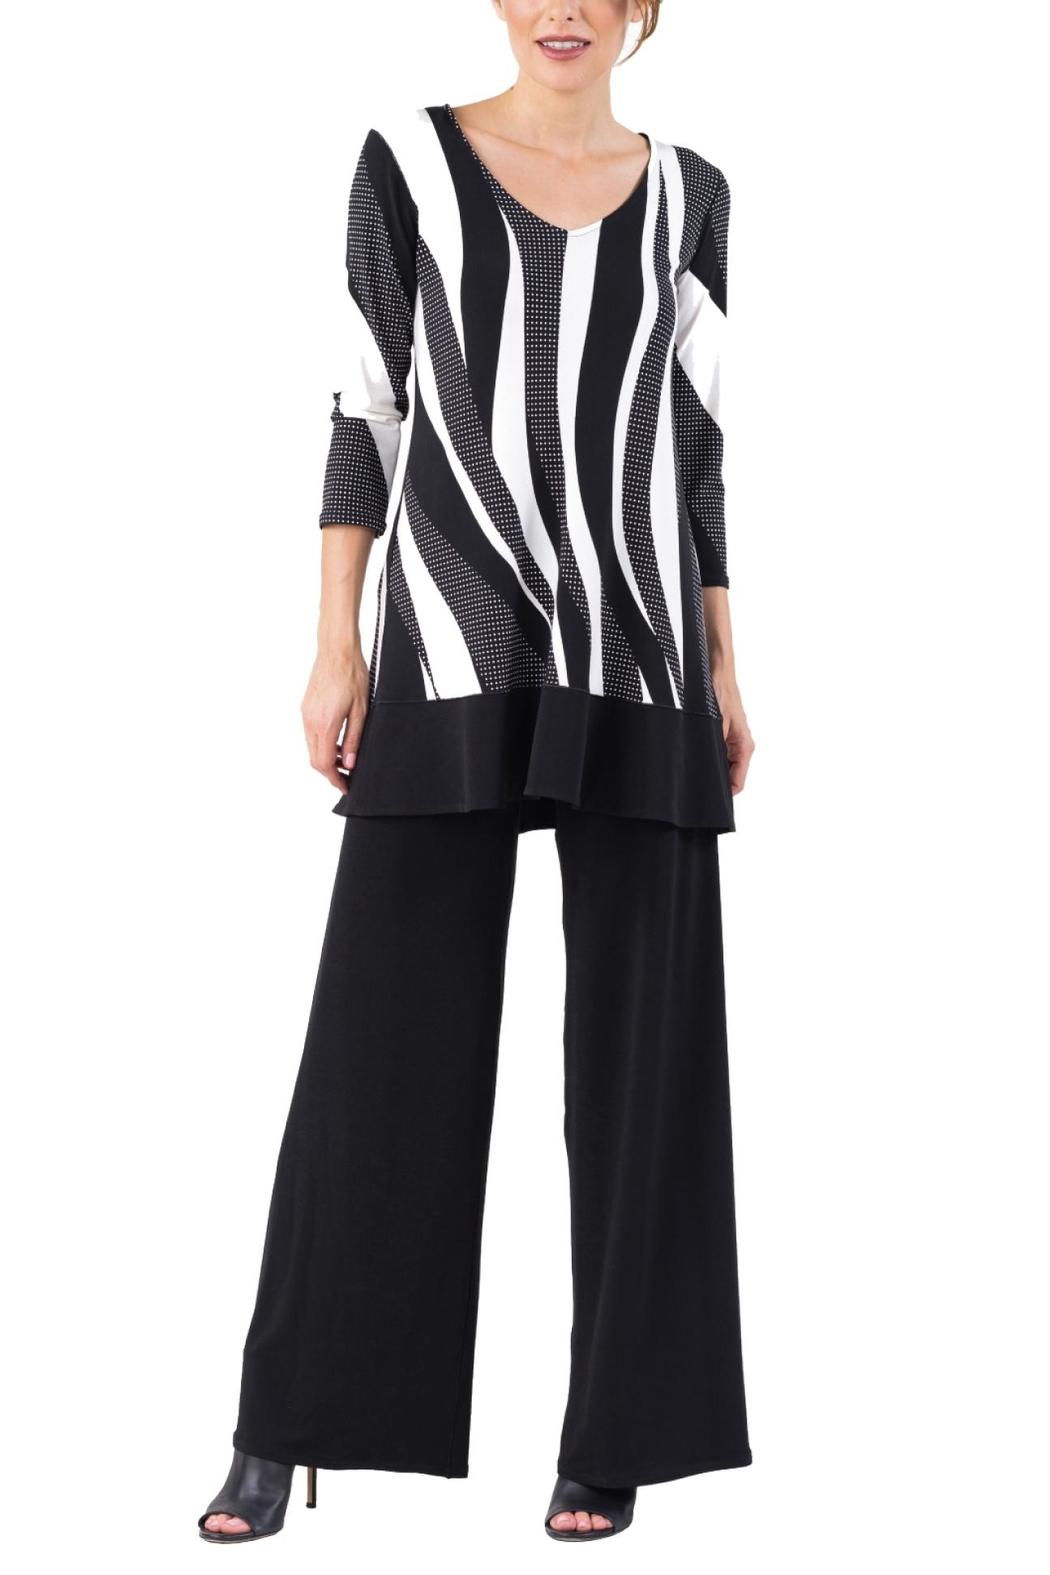 Eva Varro Swing Tunic Top - Front Cropped Image